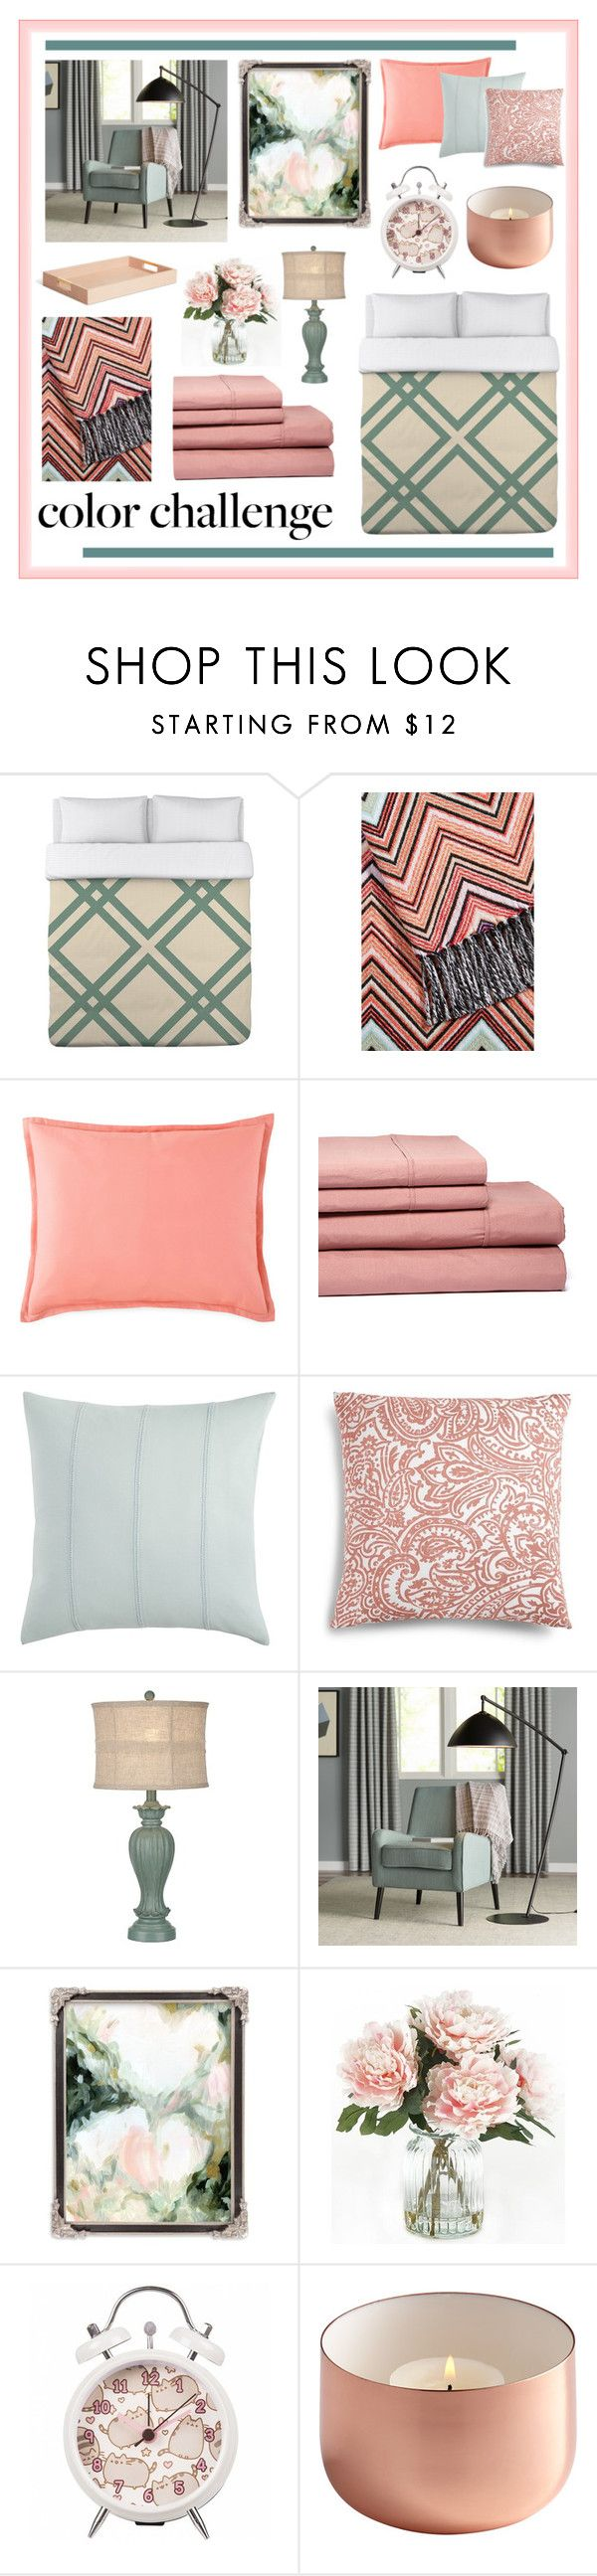 """""""Blush and Green Guest Bedroom"""" by my-pretend-closet ❤ liked on Polyvore featuring interior, interiors, interior design, home, home decor, interior decorating, One Bella Casa, Missoni Home, JCPenney Home and Pier 1 Imports"""